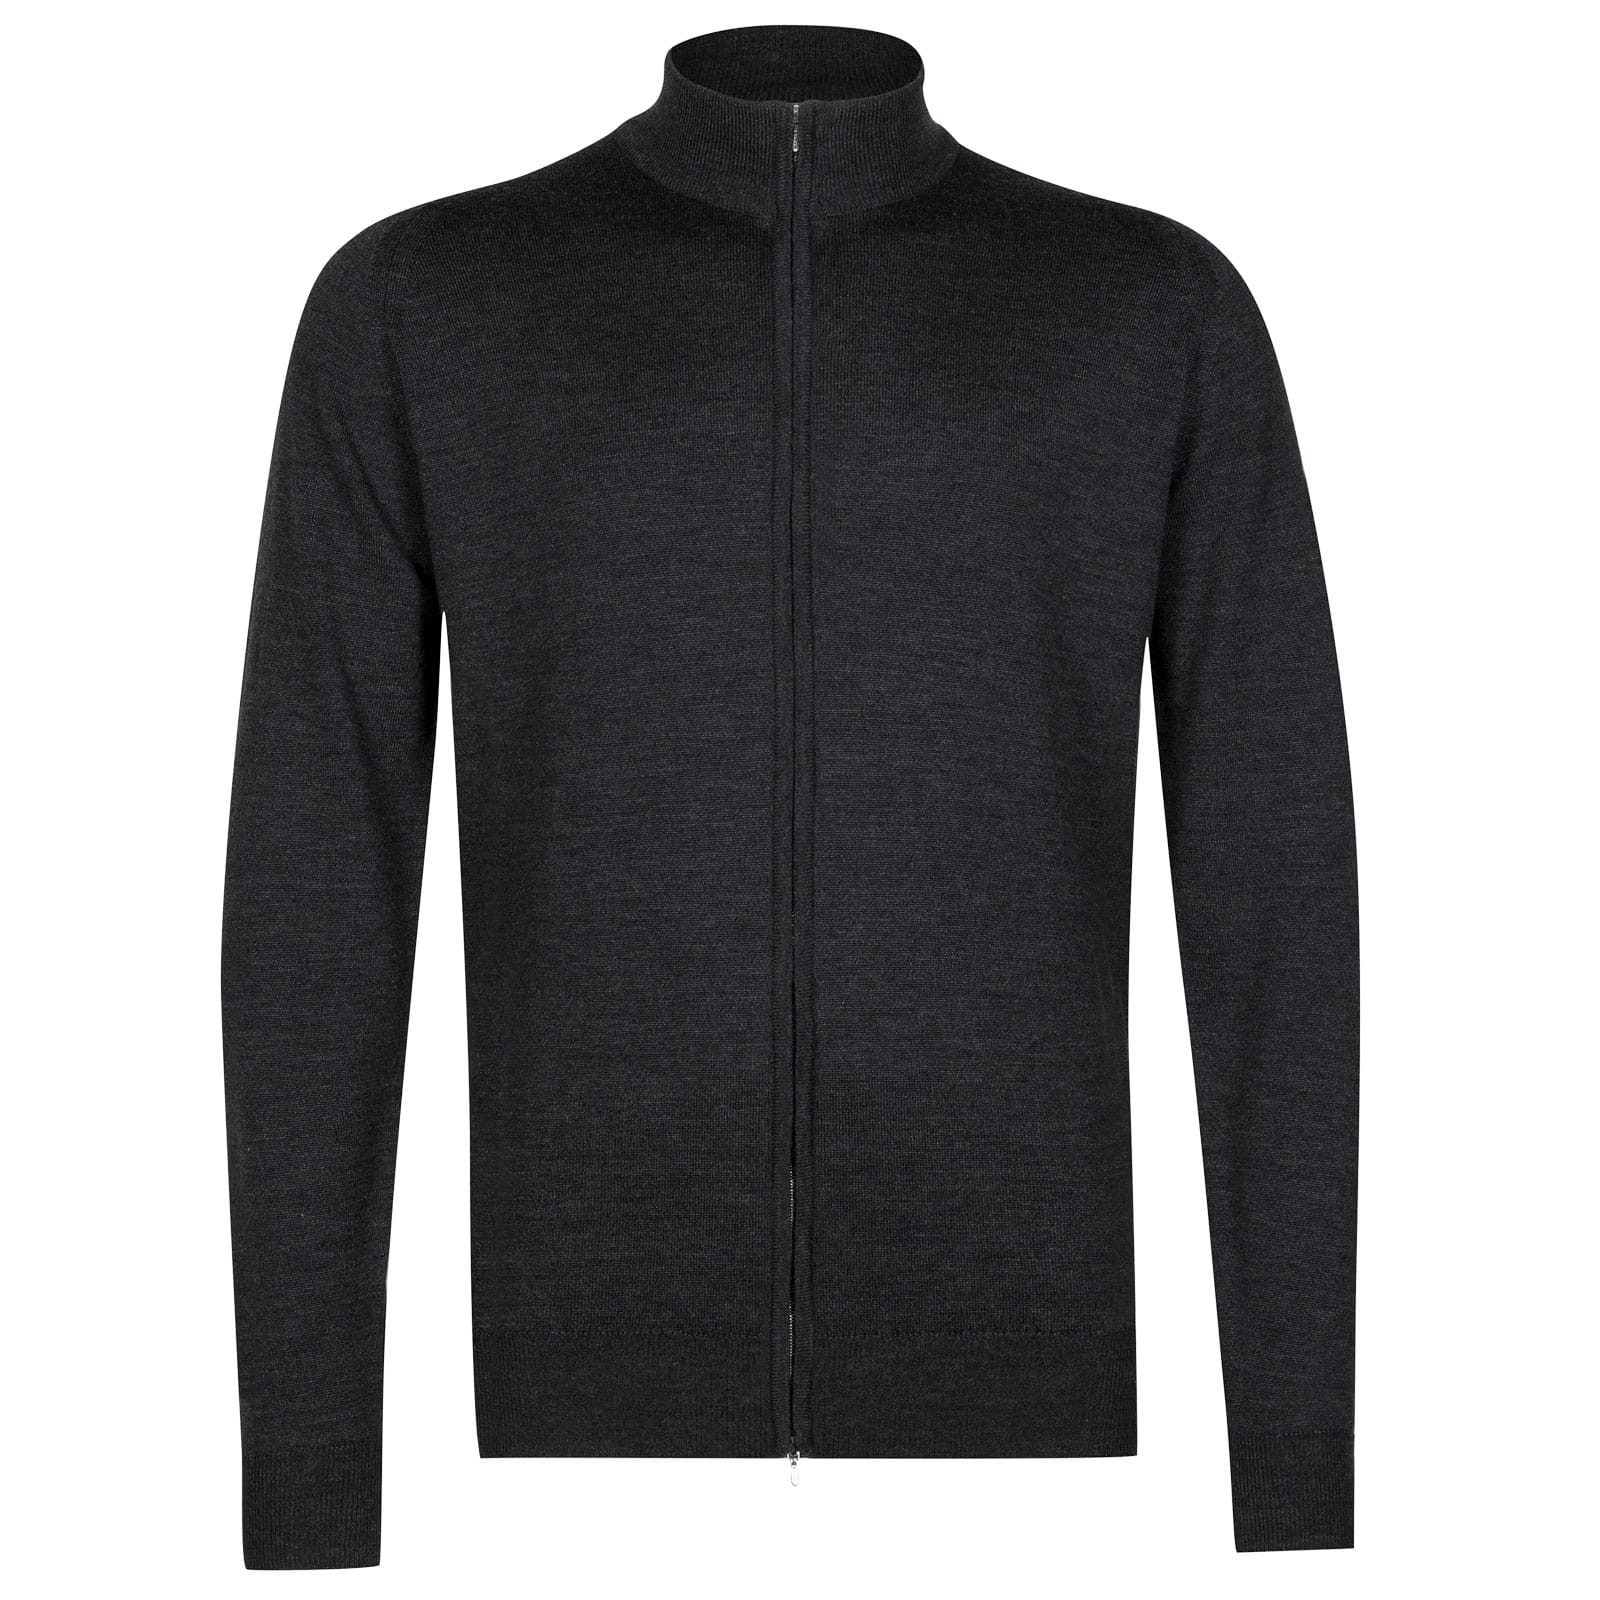 John Smedley claygate Merino Wool Jacket in Charcoal-L